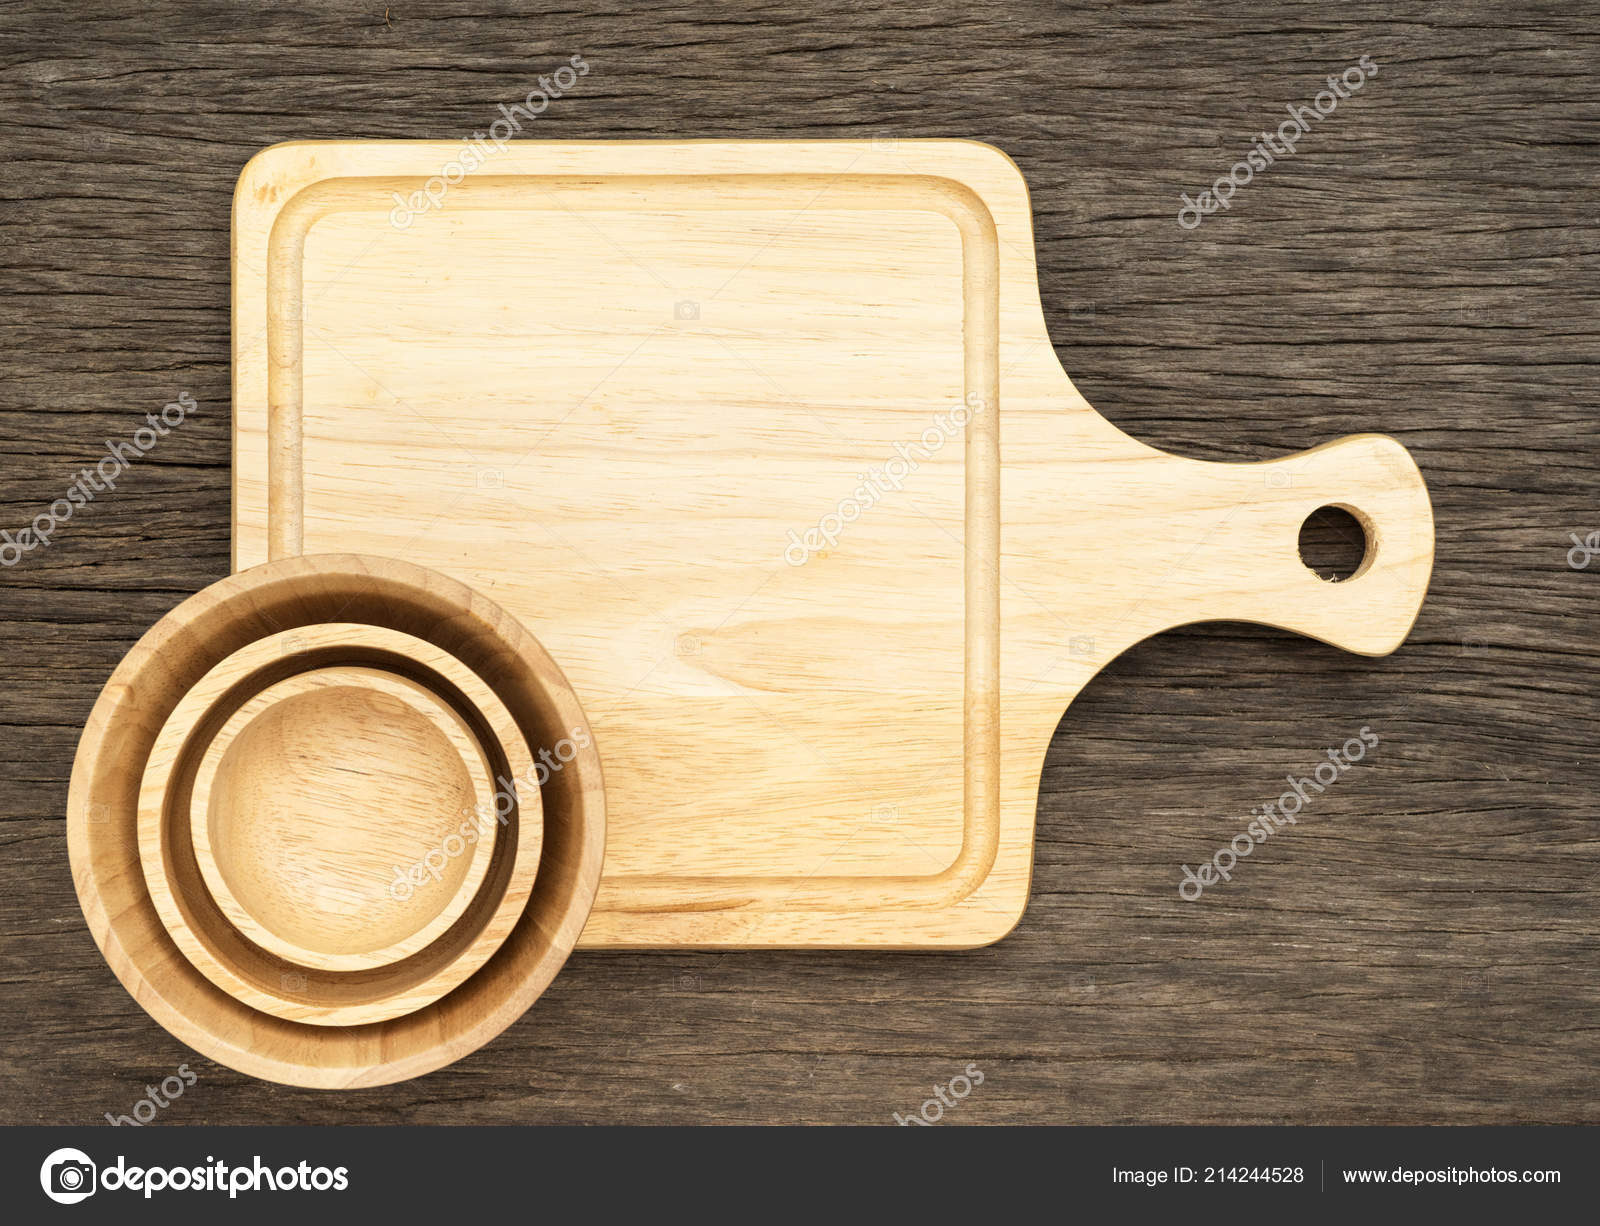 Cutting Board Bowl Wooden Kitchen Table Top View — Stock